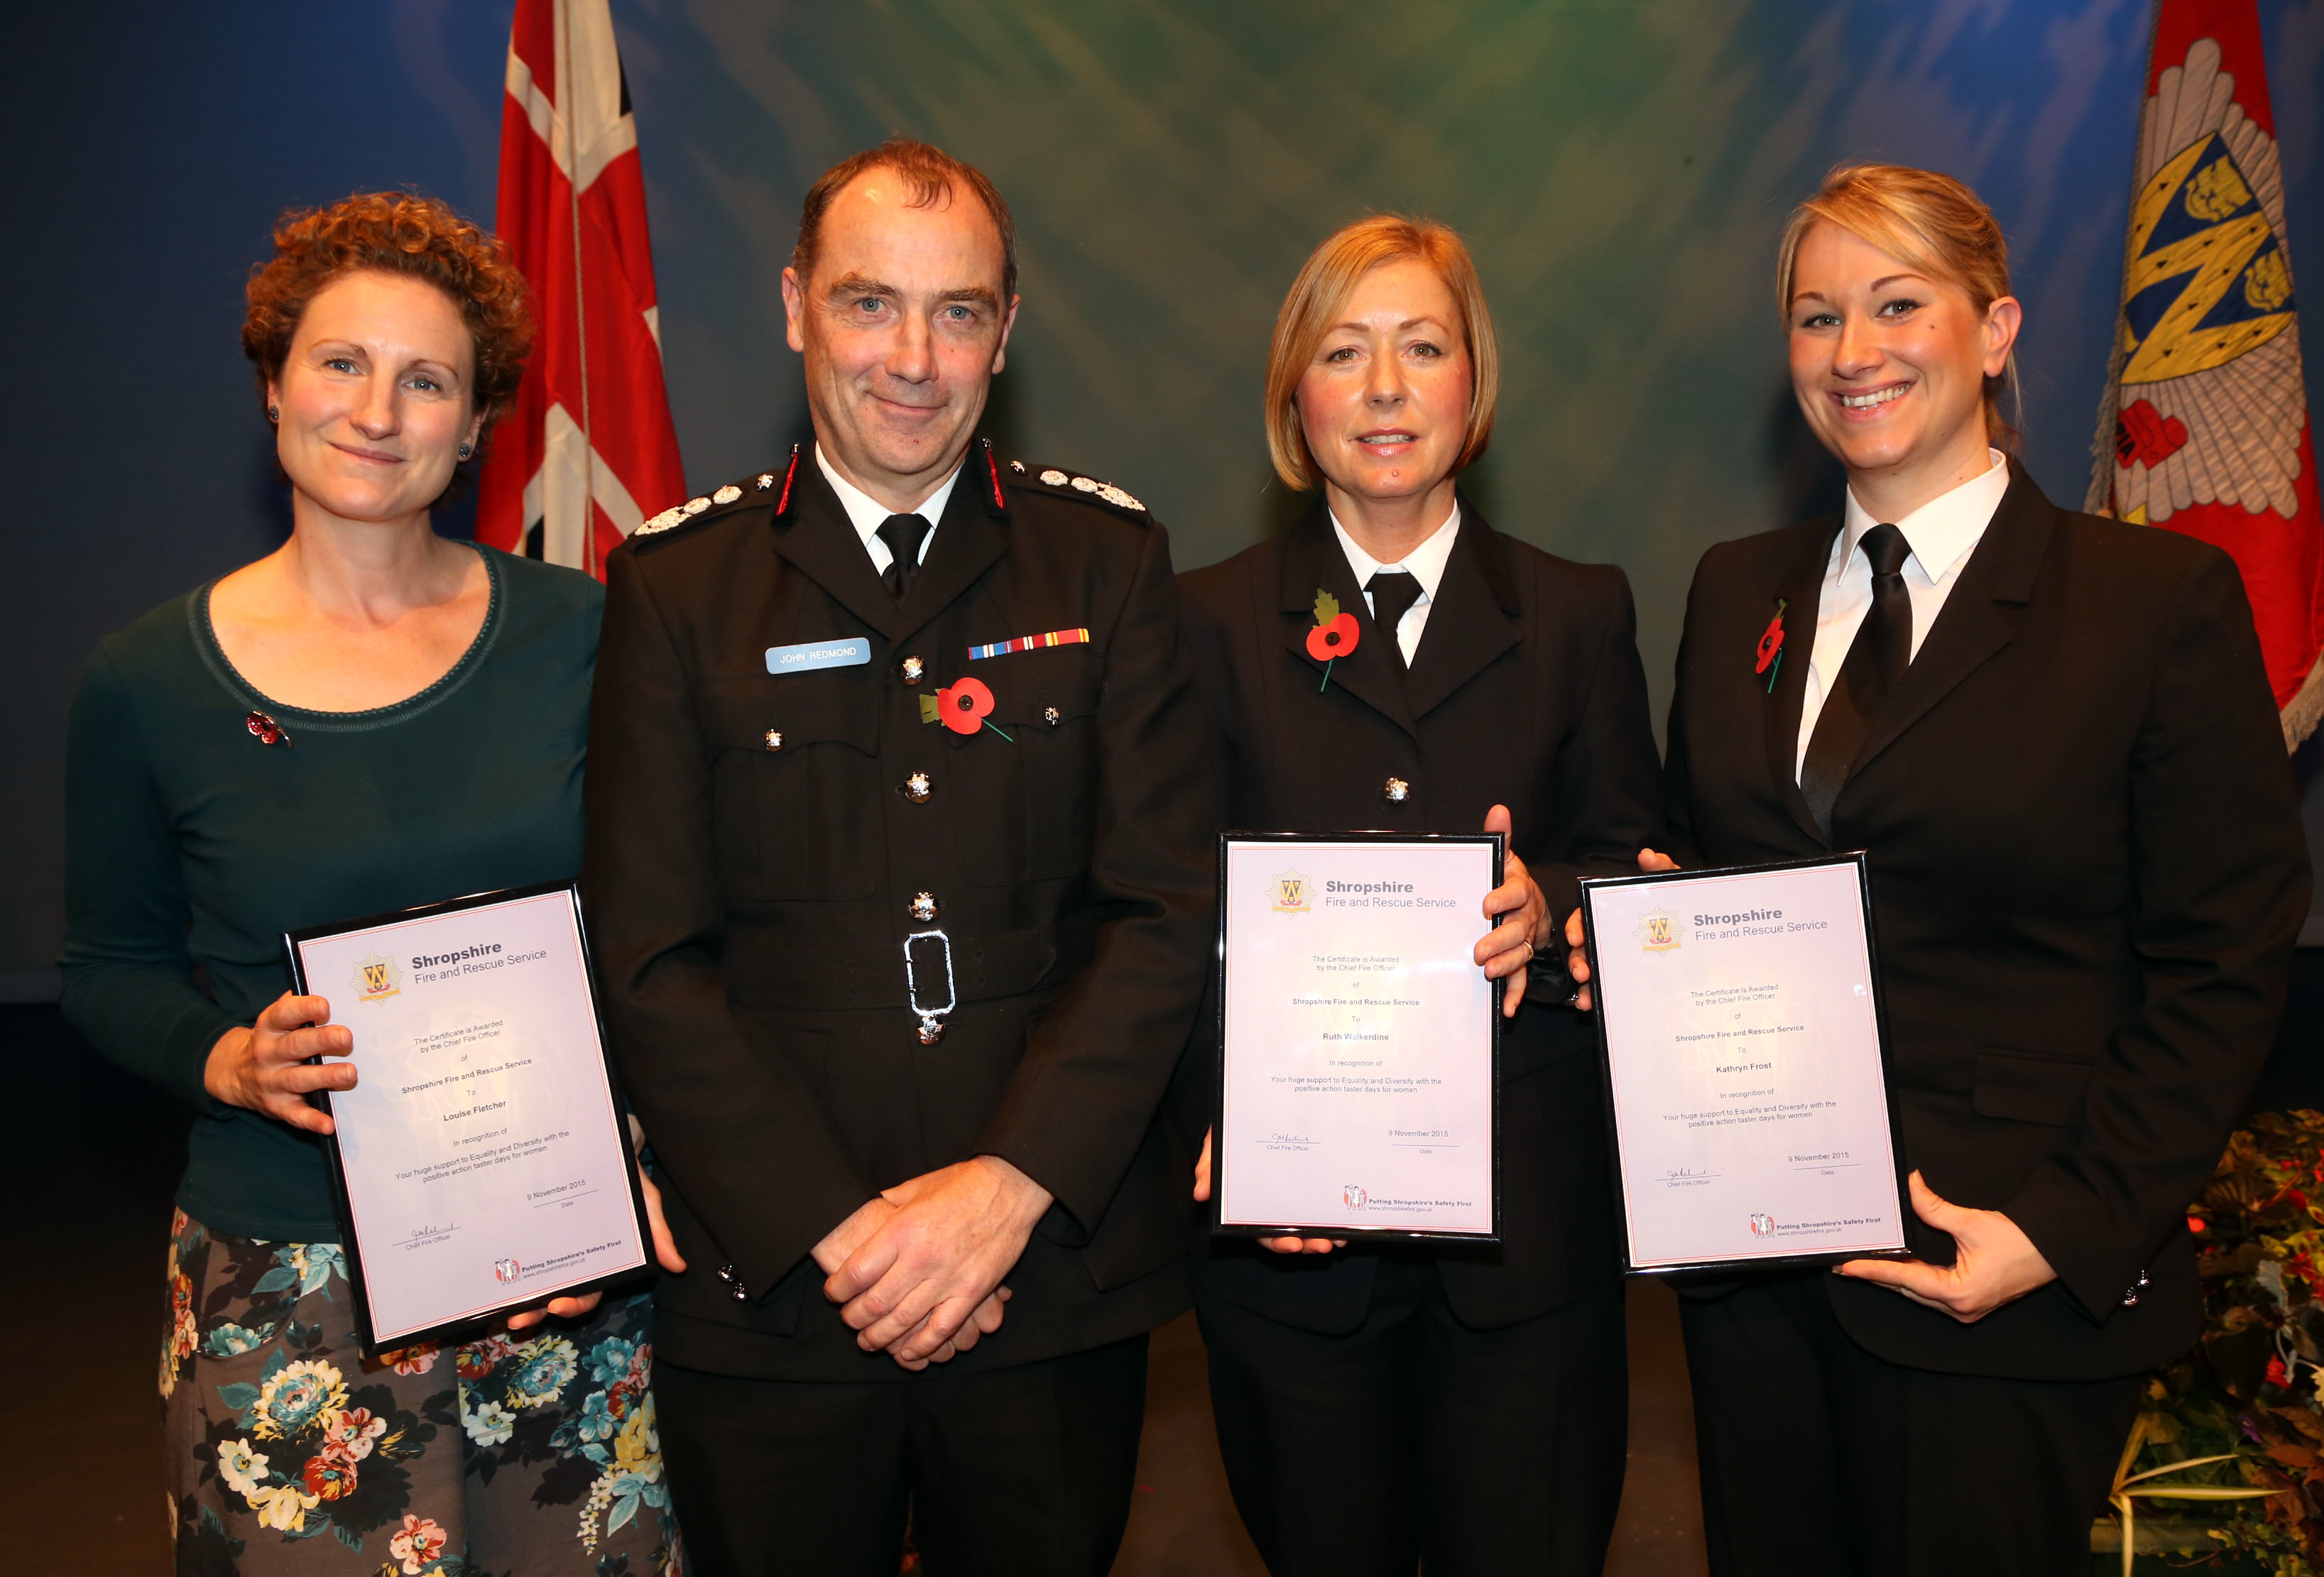 Firefighters Louise Fletcher, Ruth Walkerdine and Kat Frost encouraged more women to become firefighters